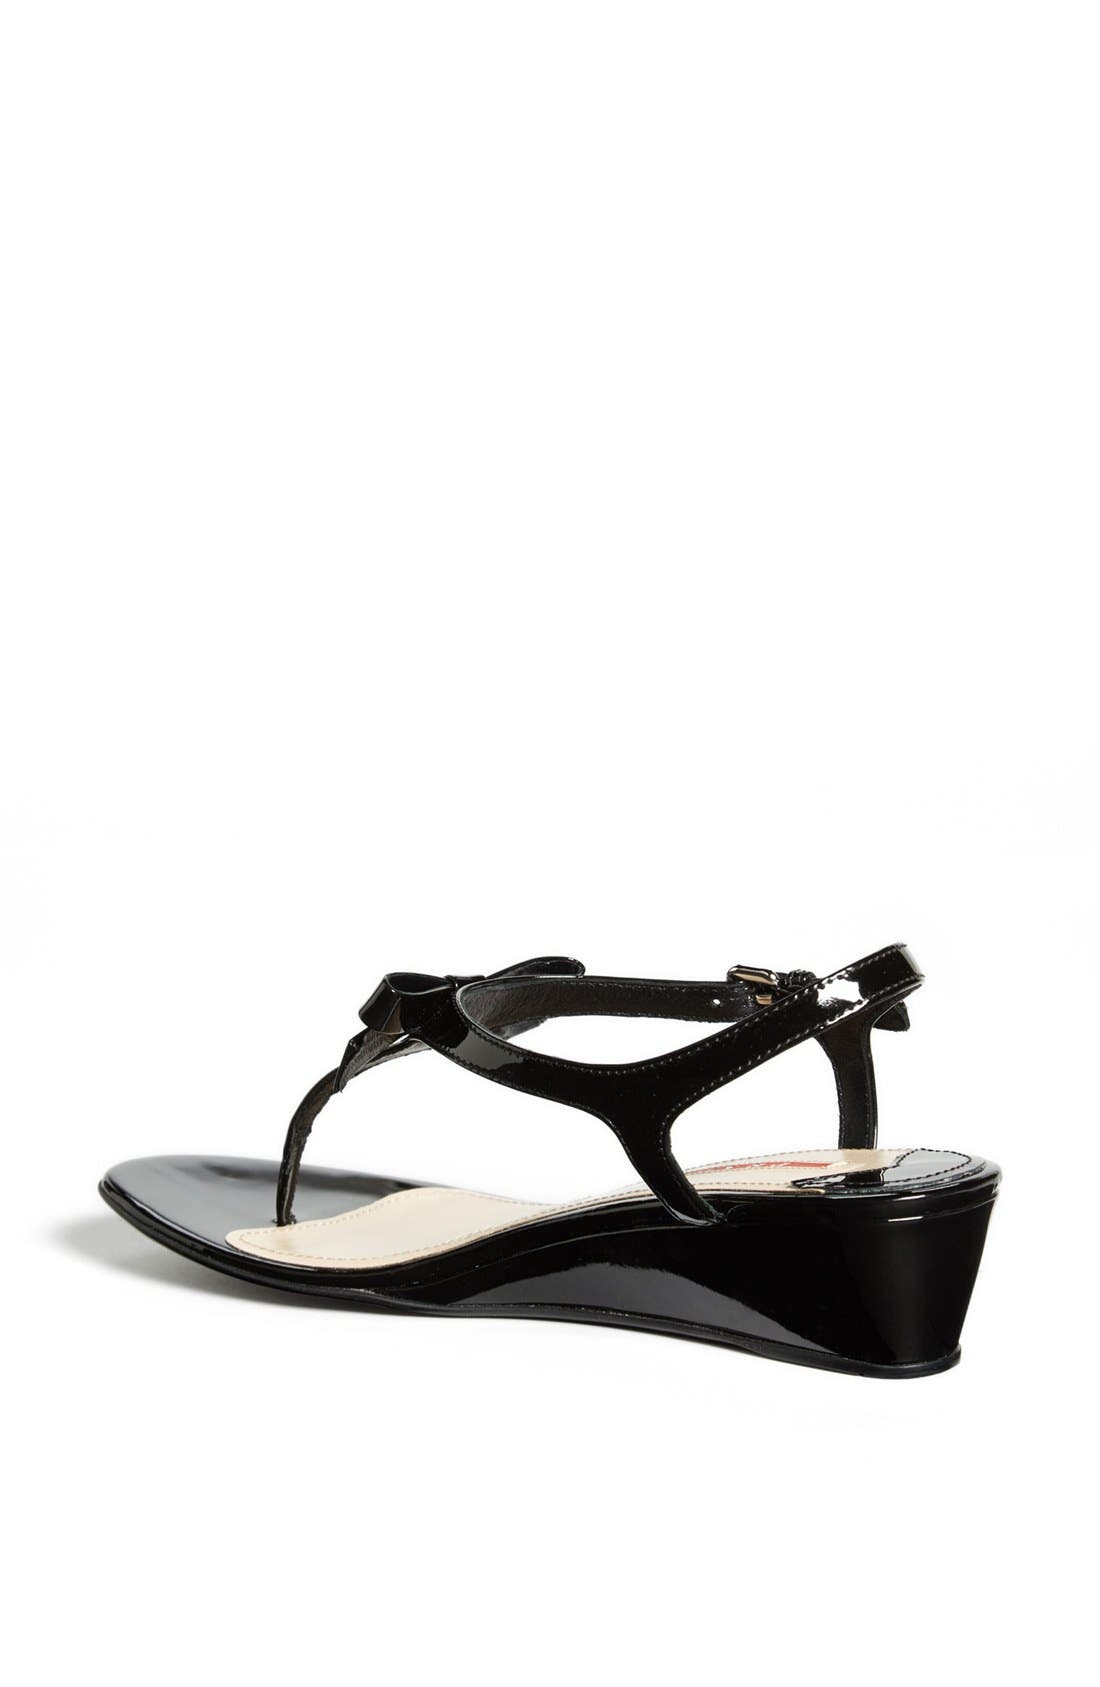 Alternate Image 2  - Prada 'Bow' Wedge Sandal